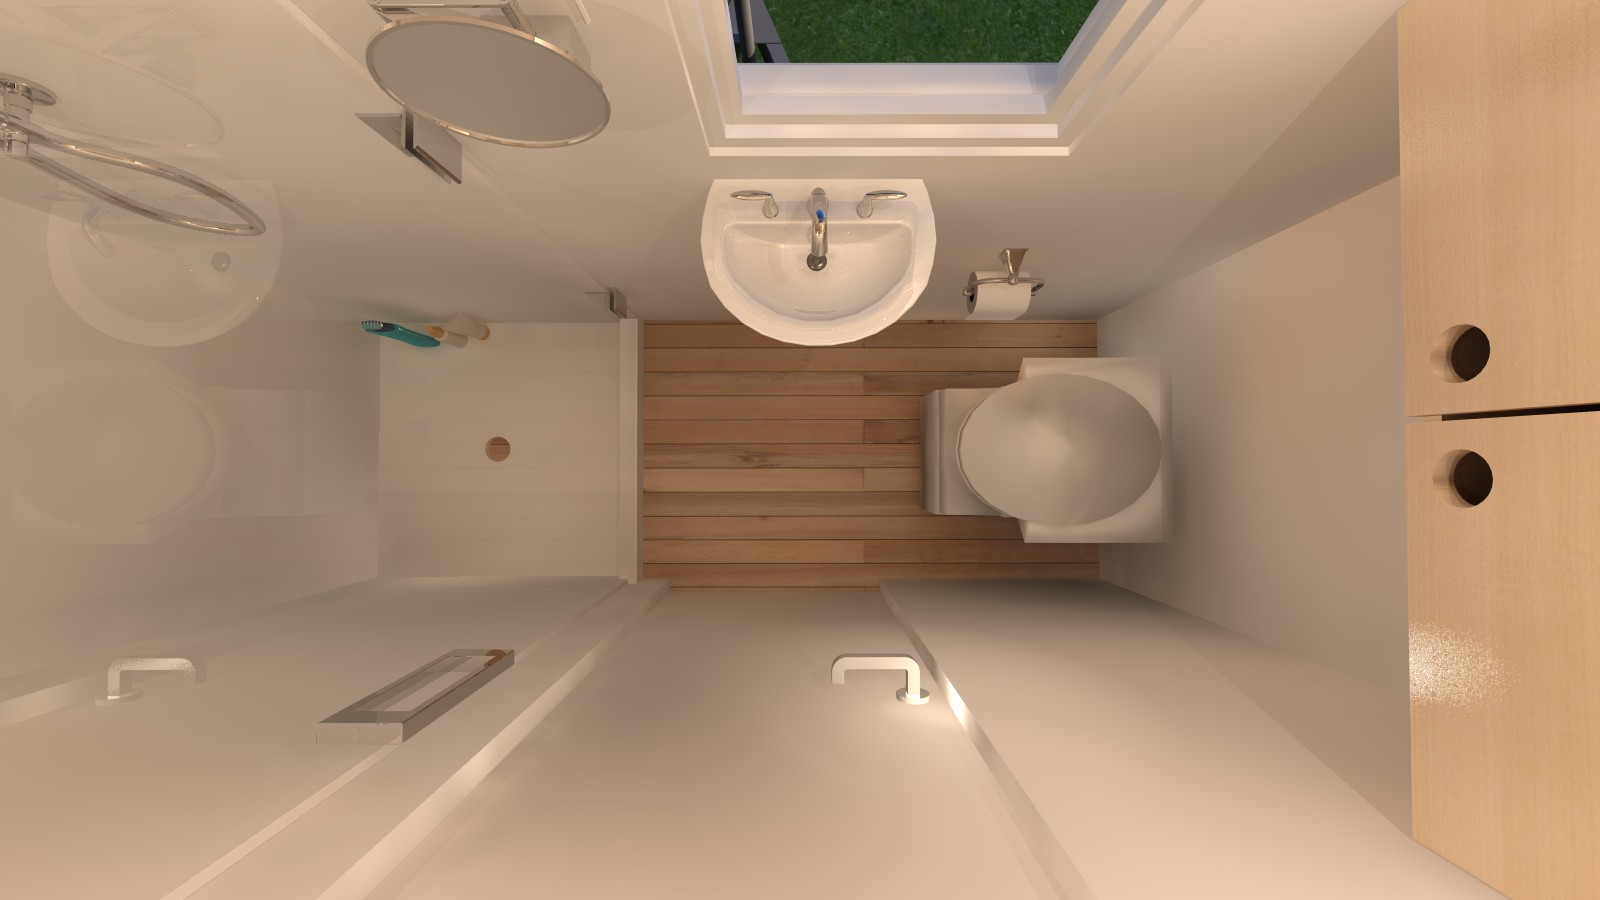 Manchester 14 tiny house plans for Home design ideas small bathroom